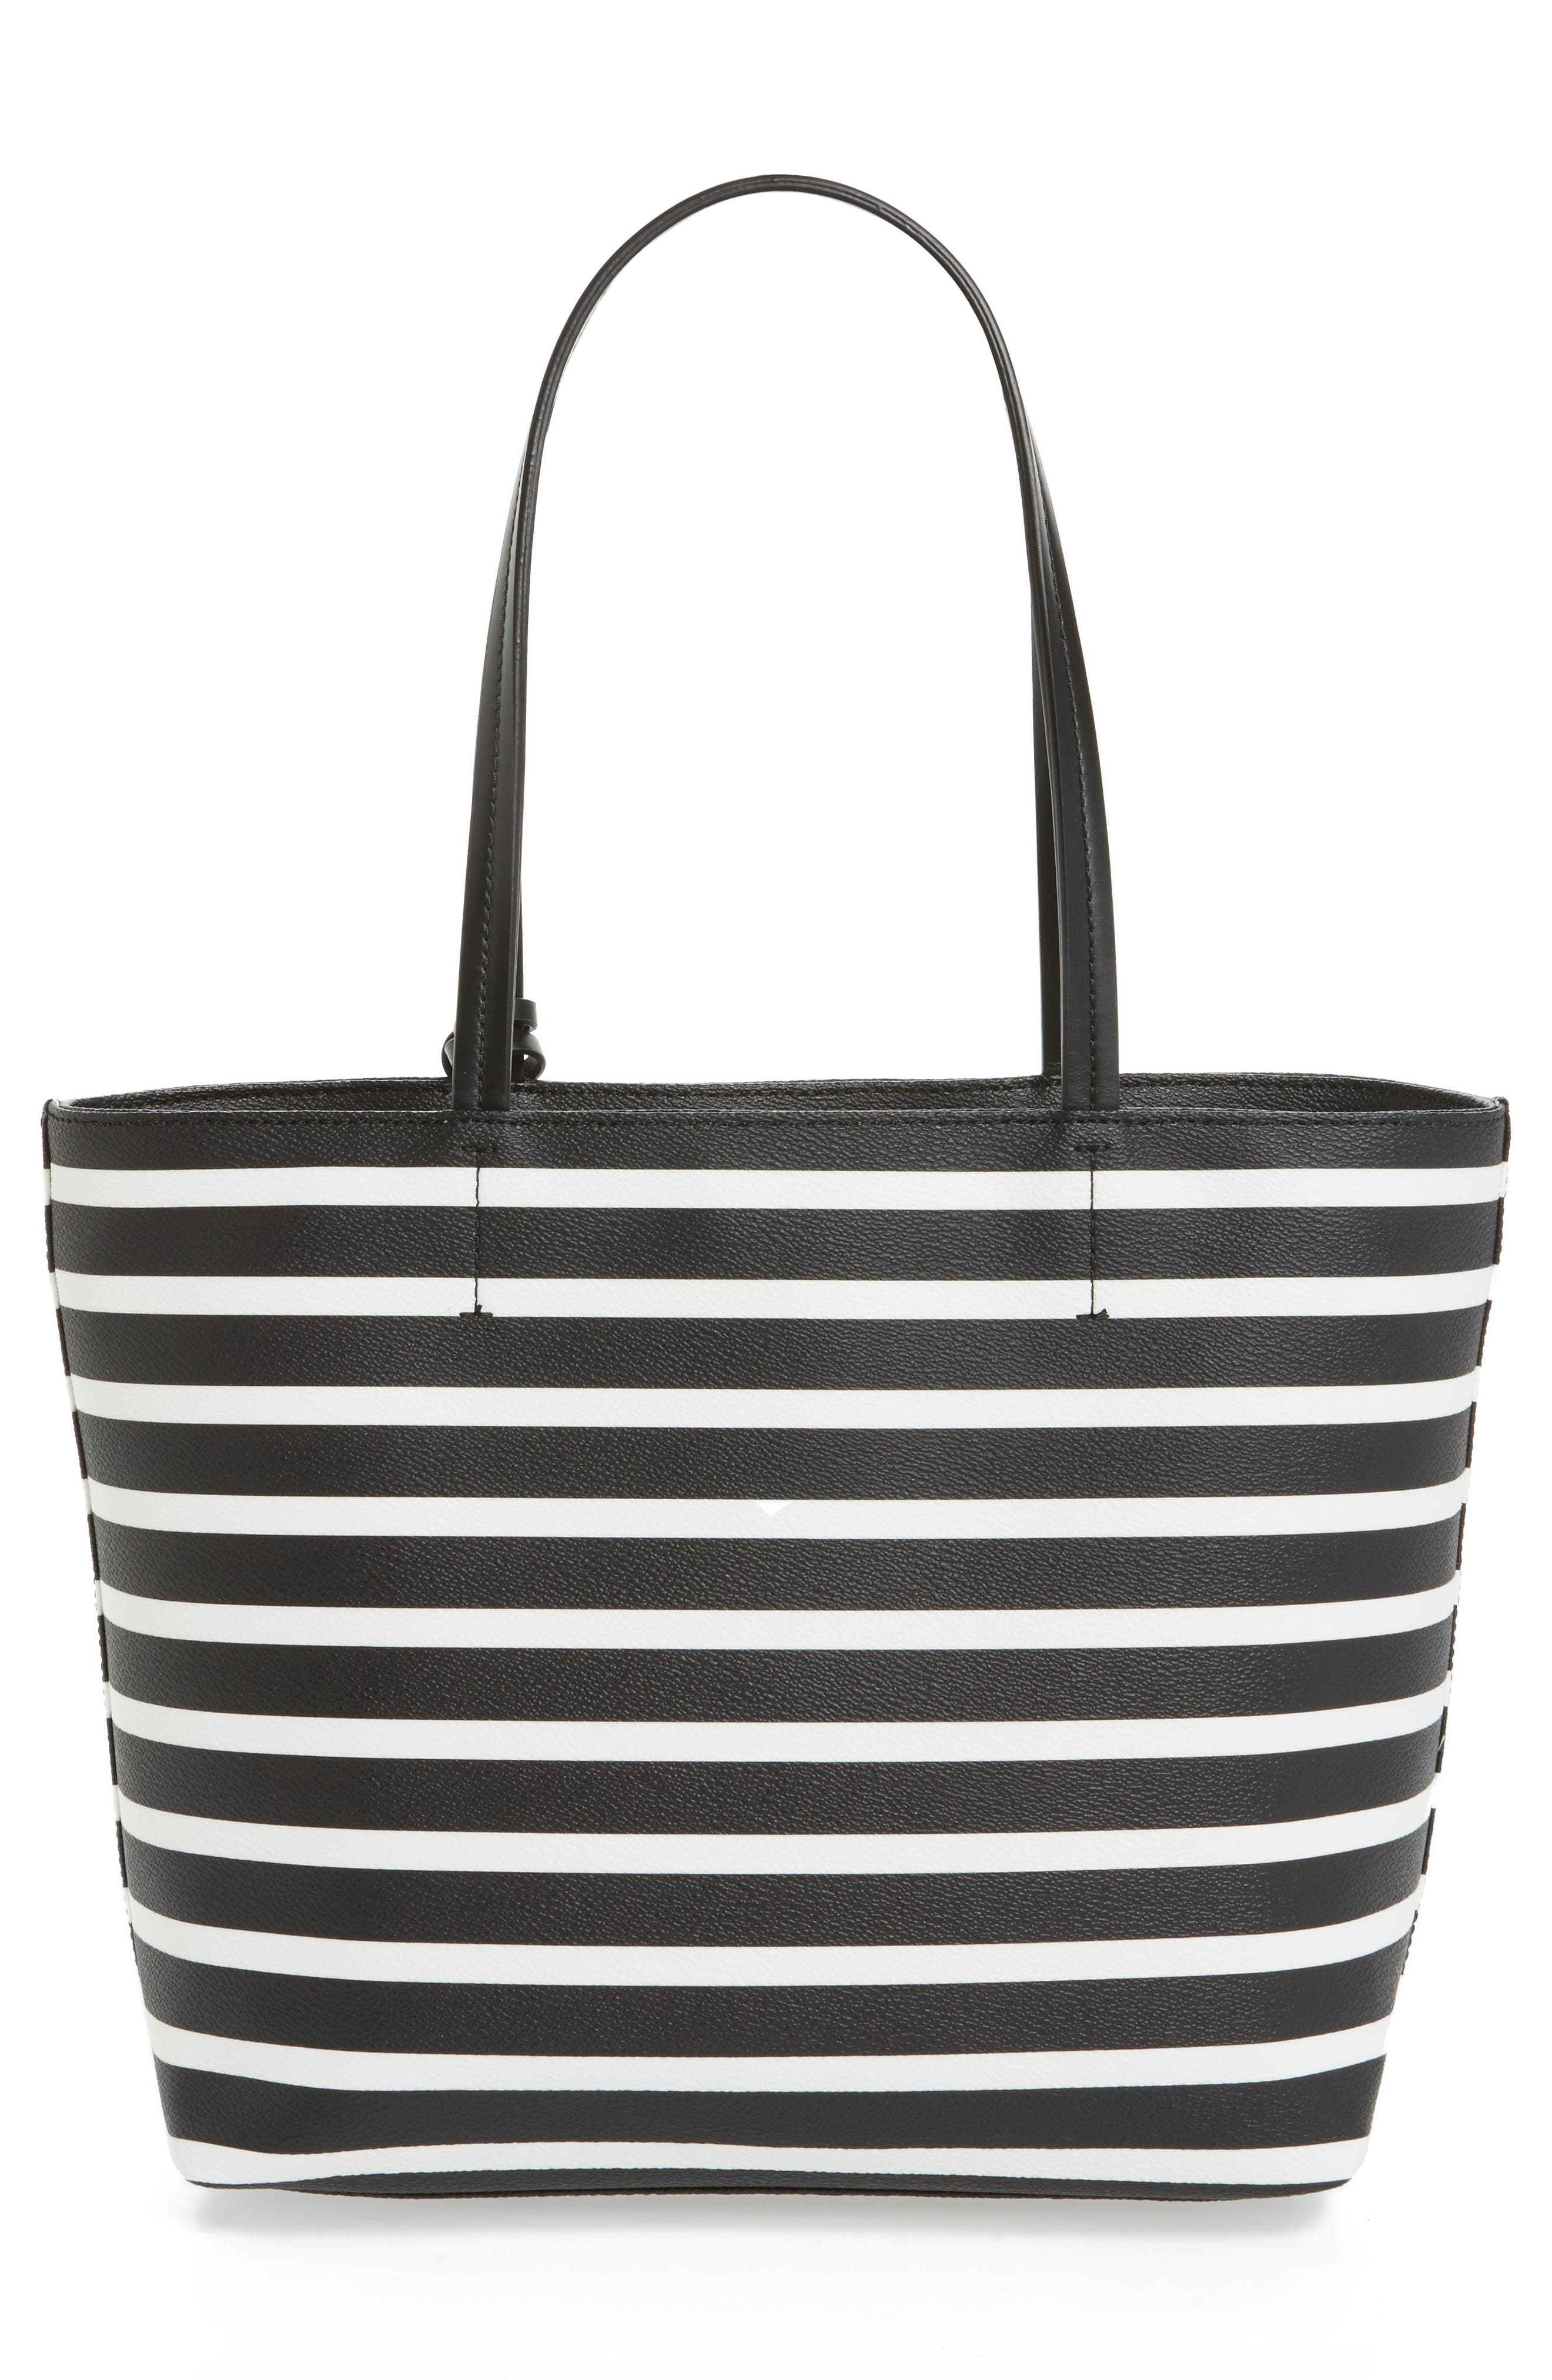 hyde lane - small riley faux leather tote,                             Alternate thumbnail 3, color,                             003